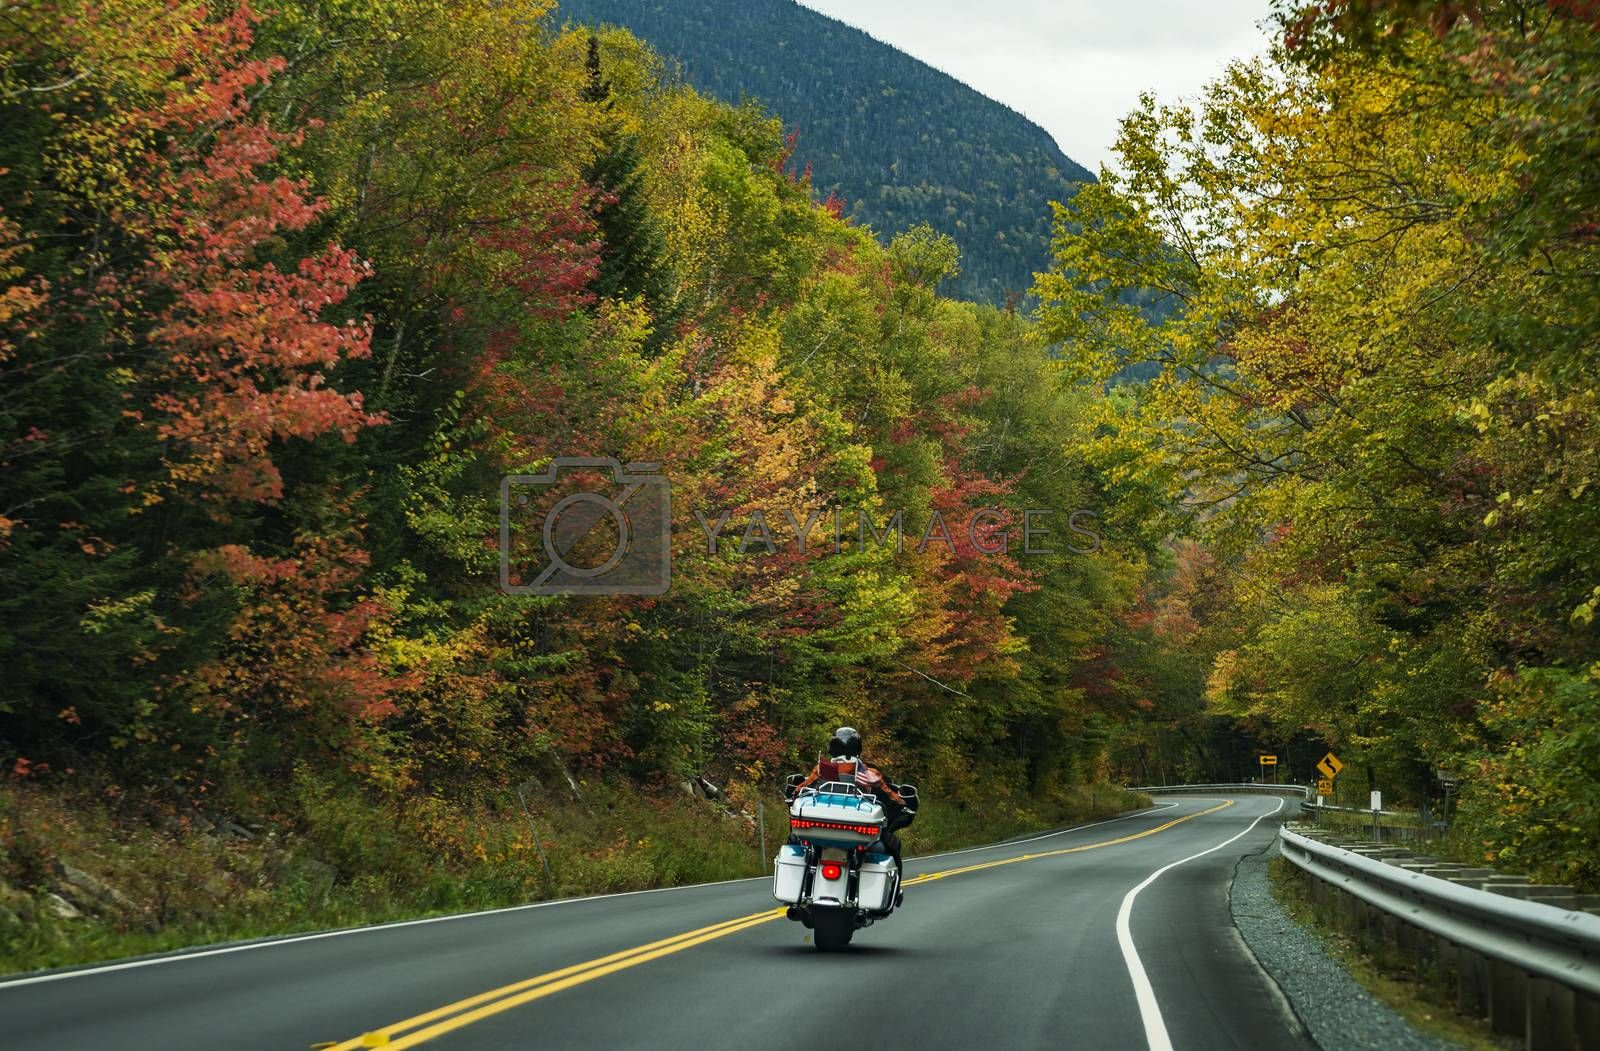 Motorcycle driving on the road on the White Mountains during the fall, New Hampshire, USA